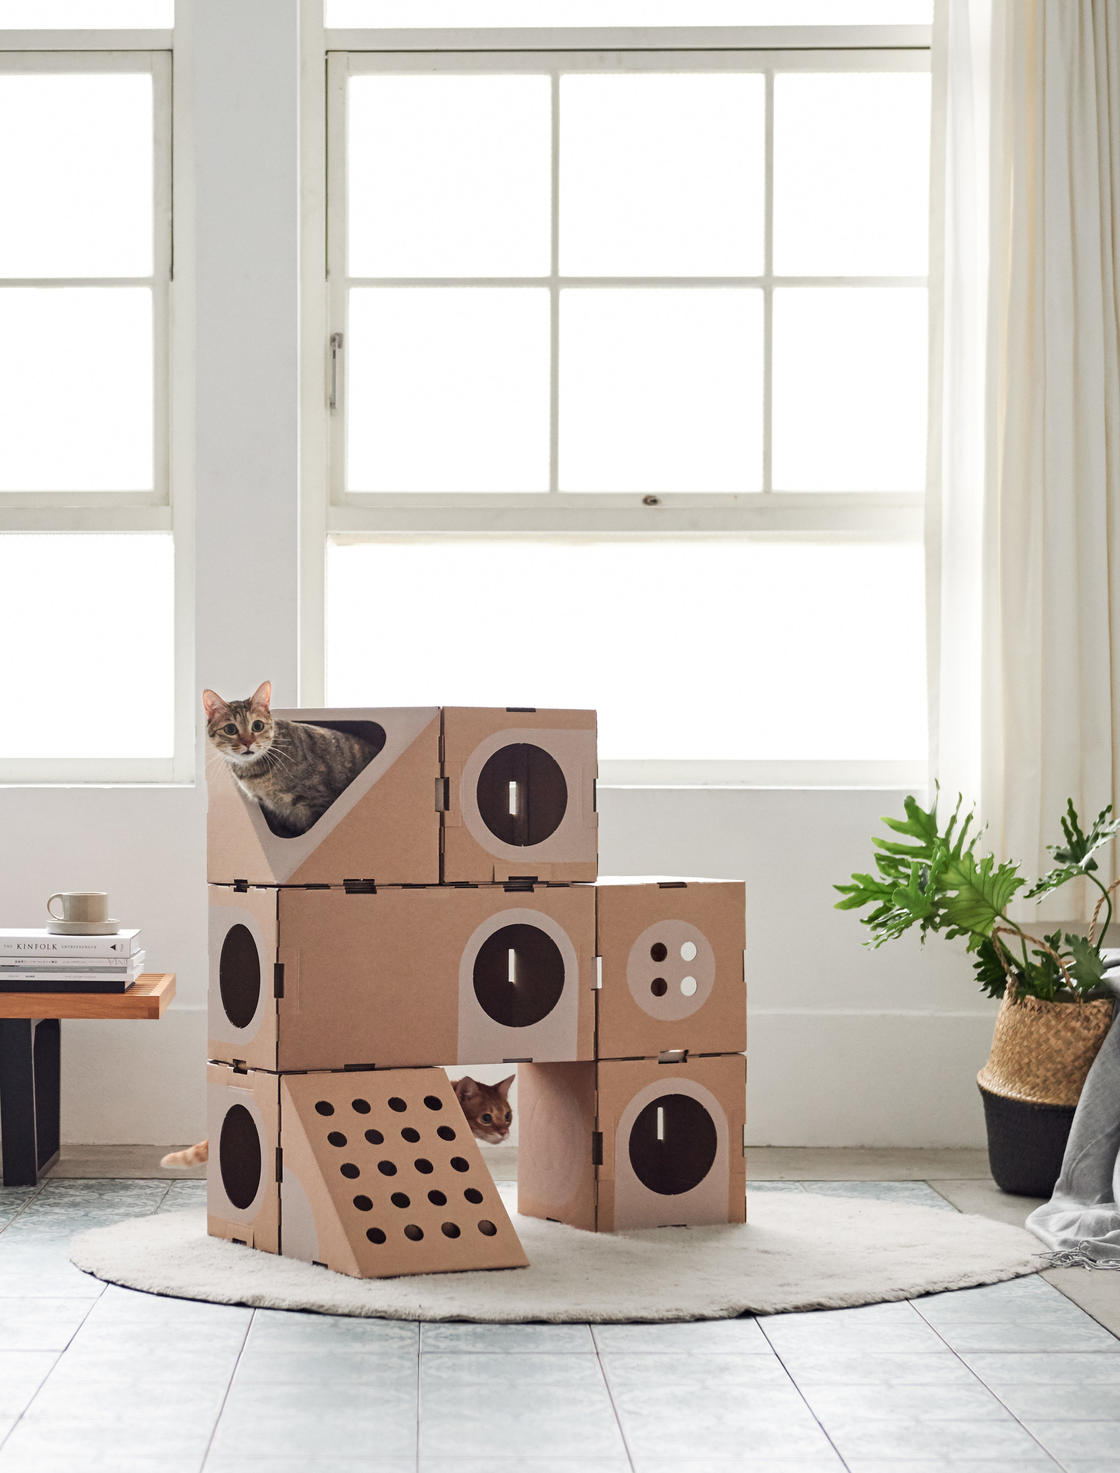 Cat Rooms – Cute and clever modular houses for cats